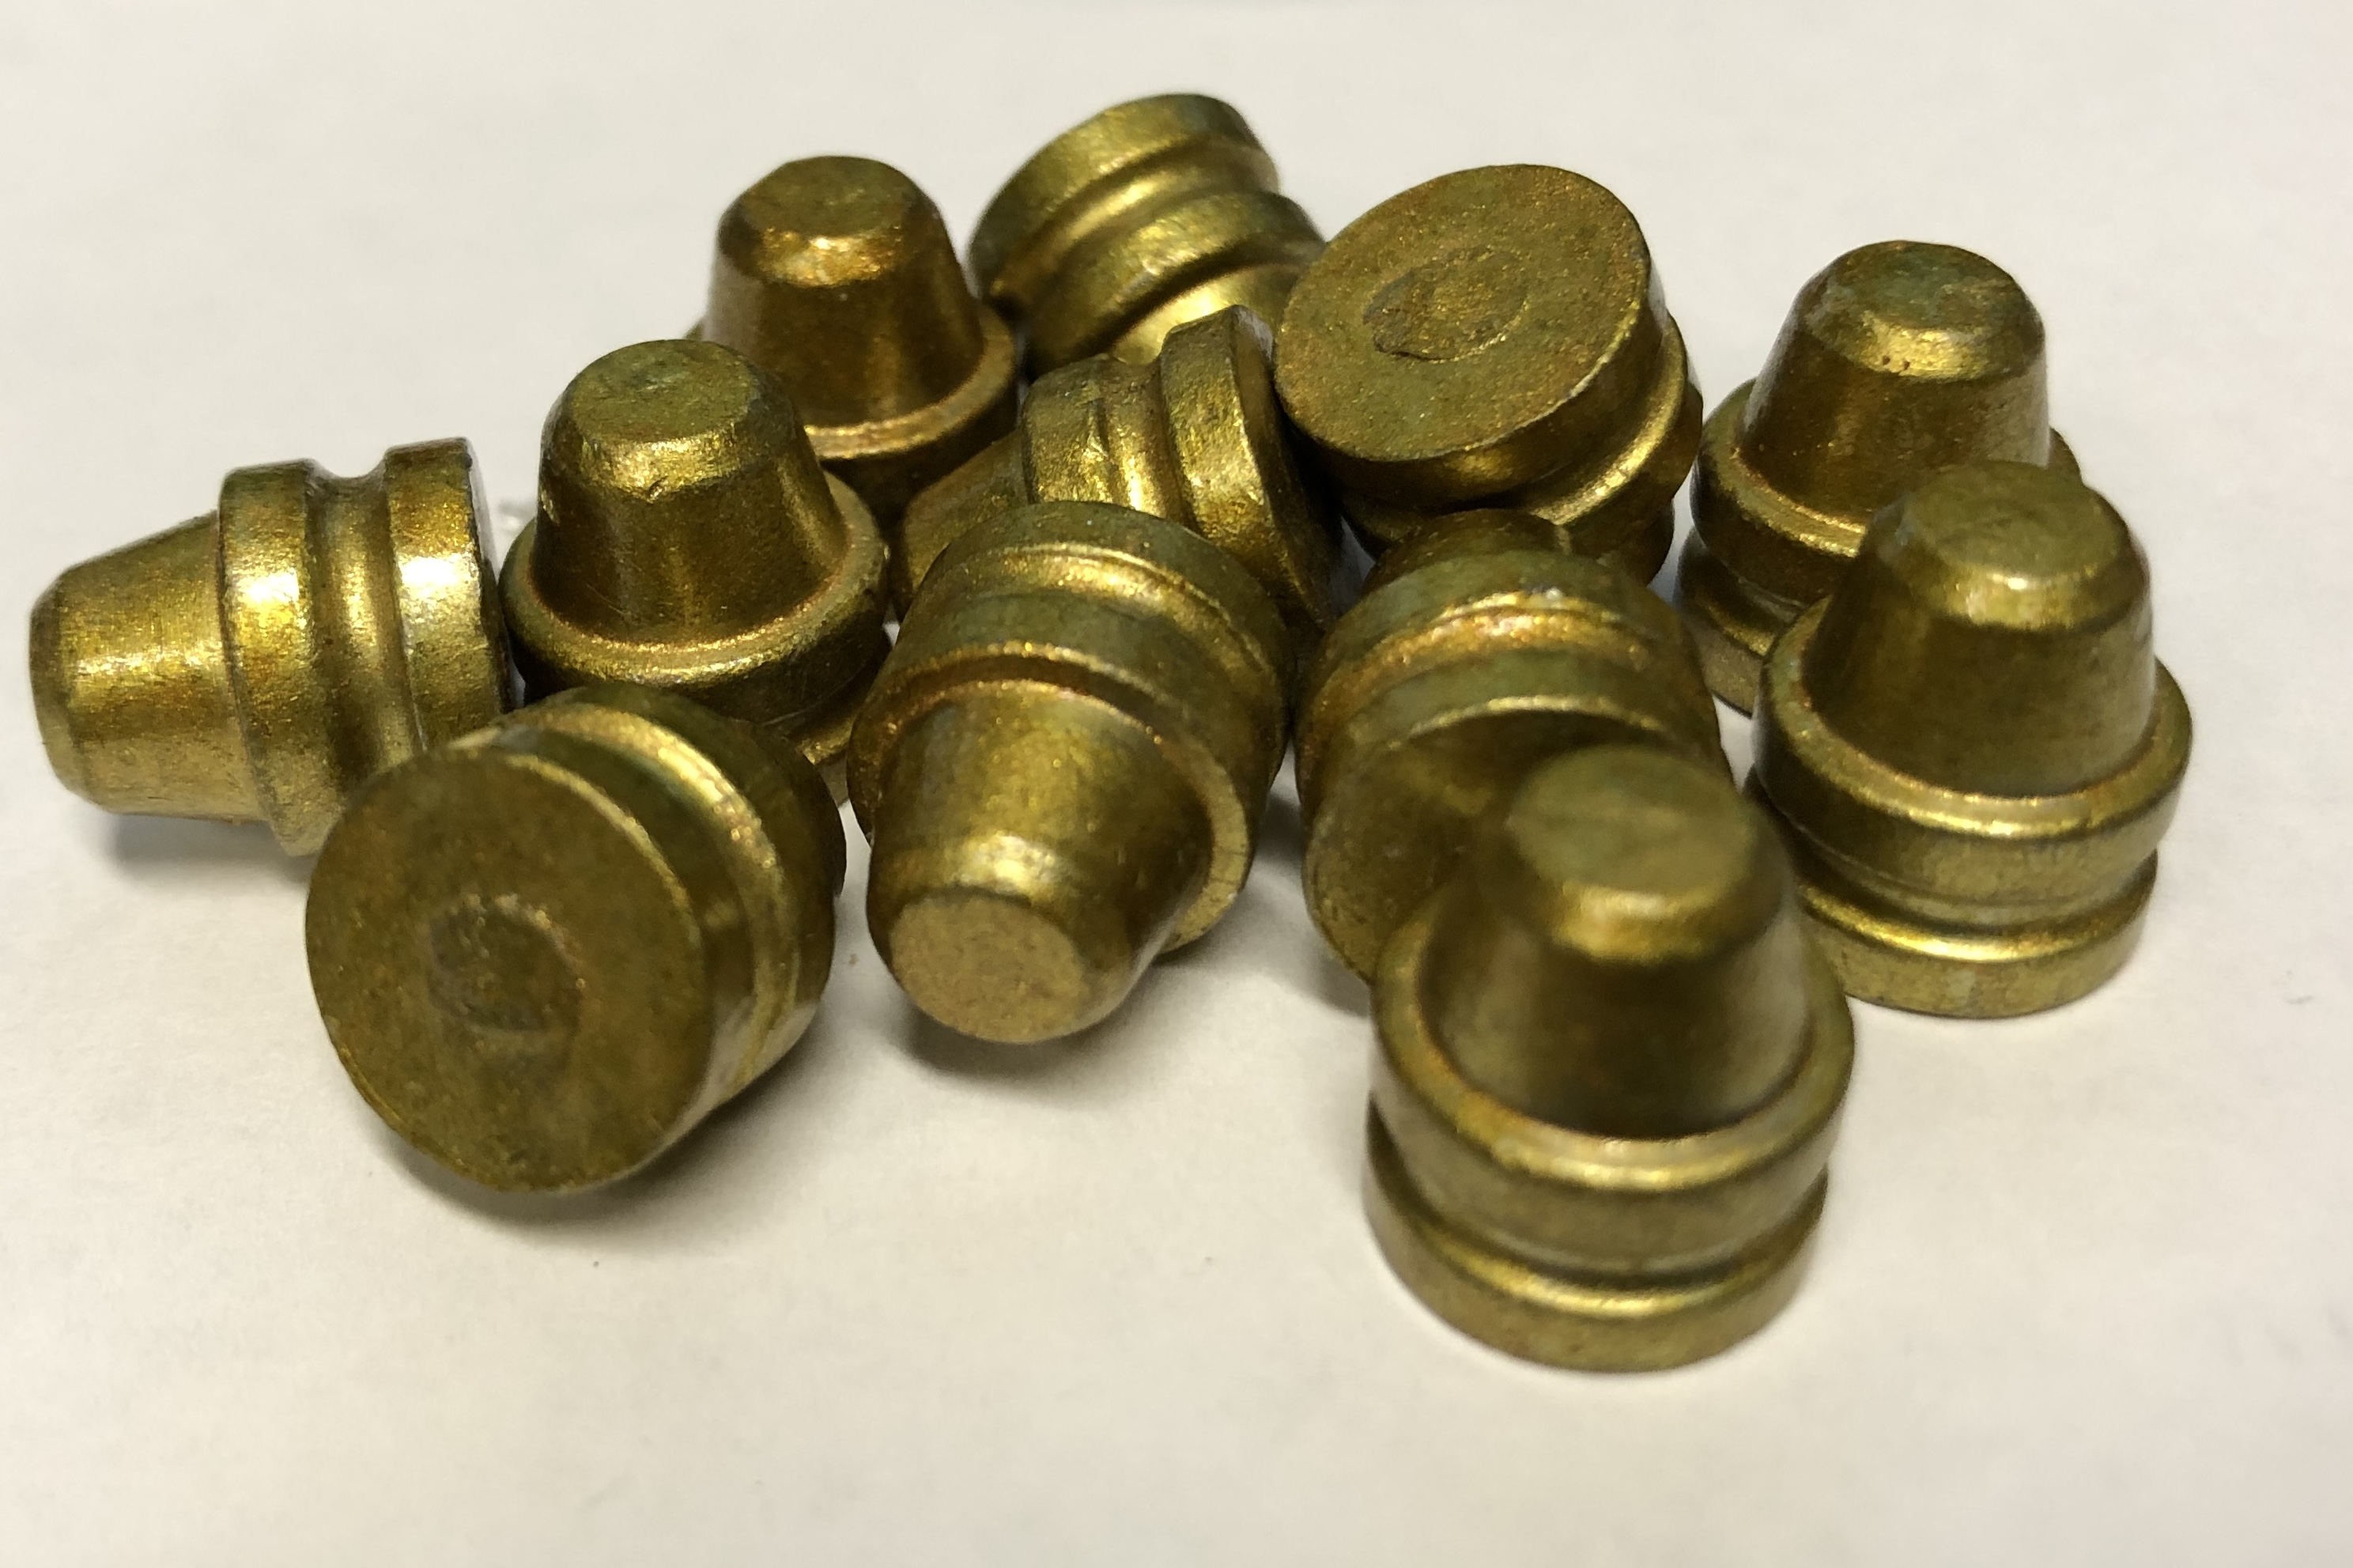 45 160gr Button Nose/Flat Base/Groove (656ct , $0 064/bullet)